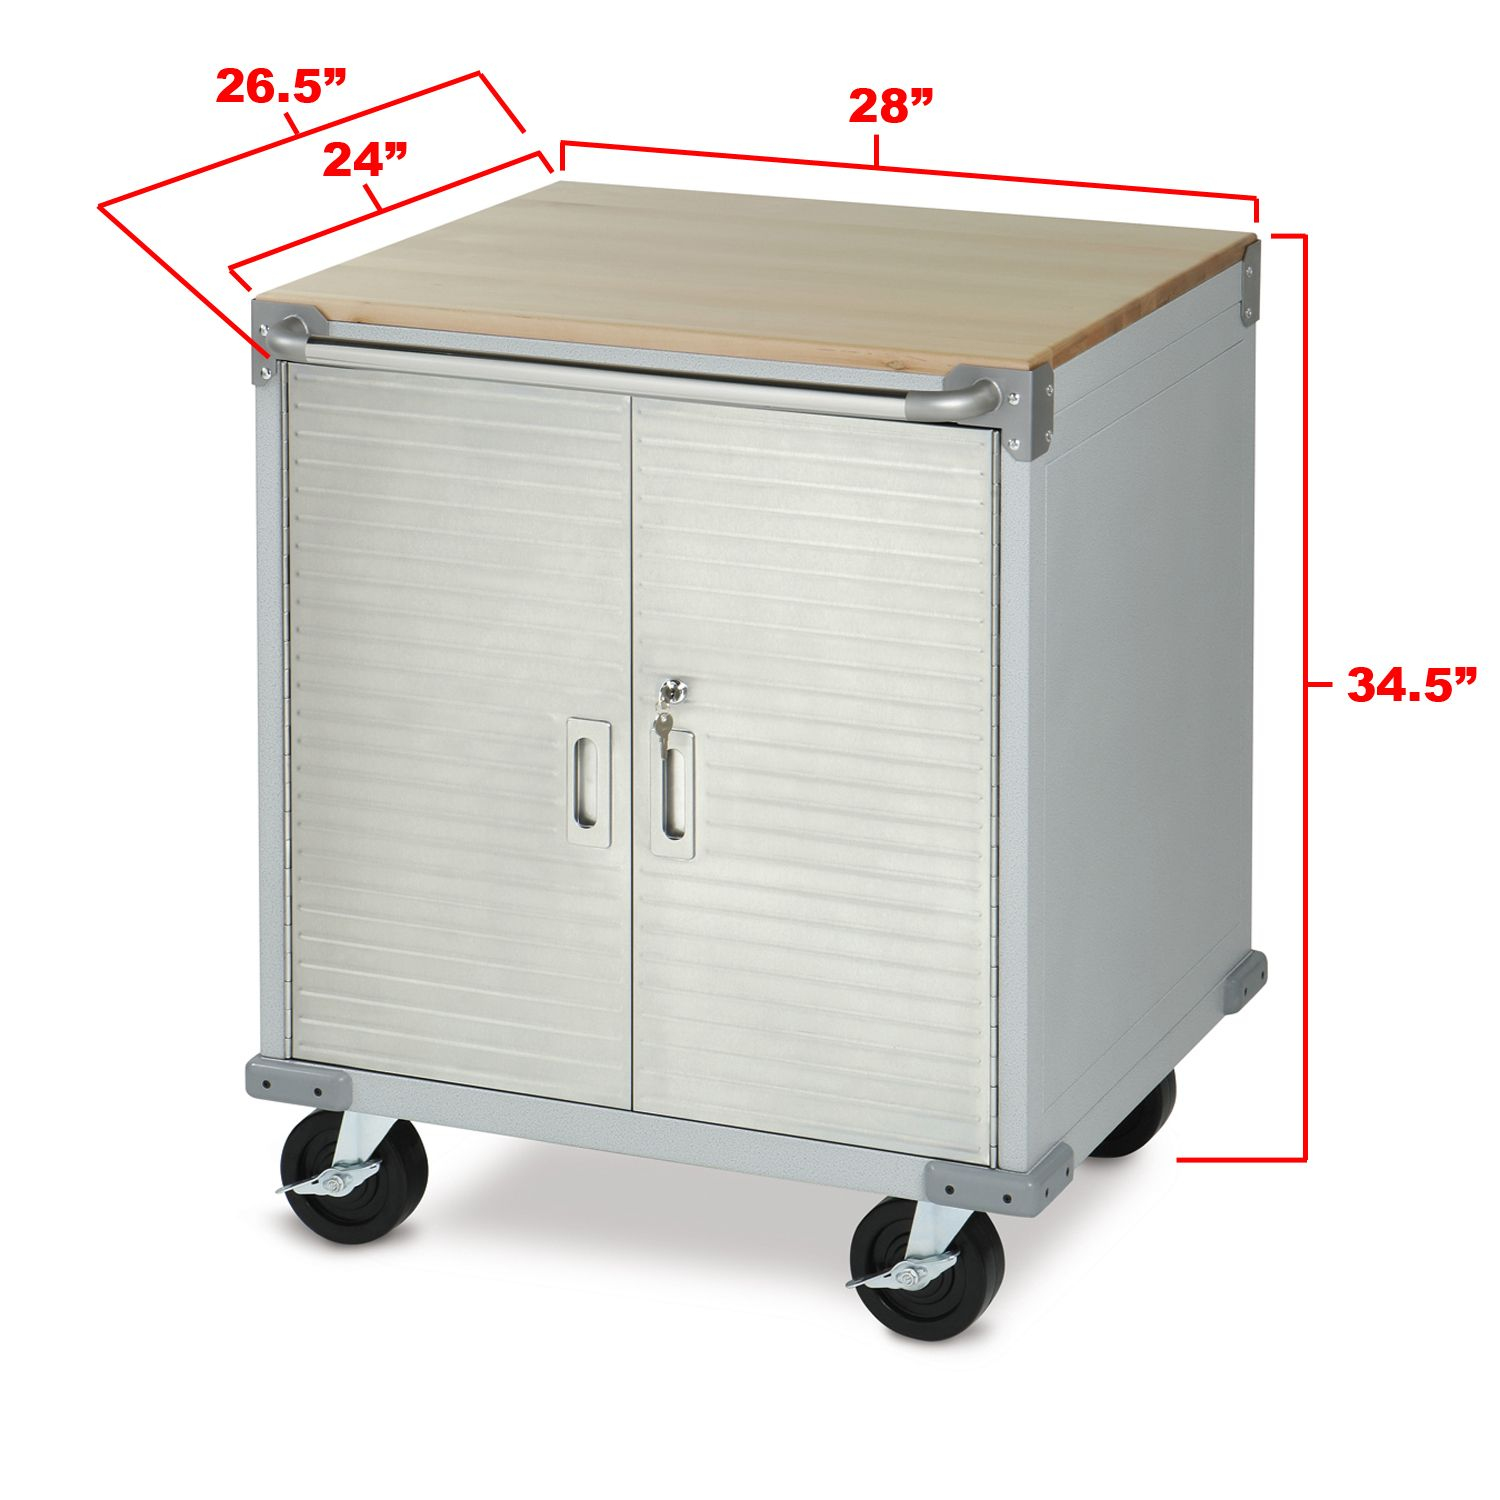 The Dimensions Of The Seville Classics Ultrahd Rolling Storage Cabinet Item Uhd20207 184 99 With Images Rolling Storage Steel Storage Cabinets Storage Cabinets